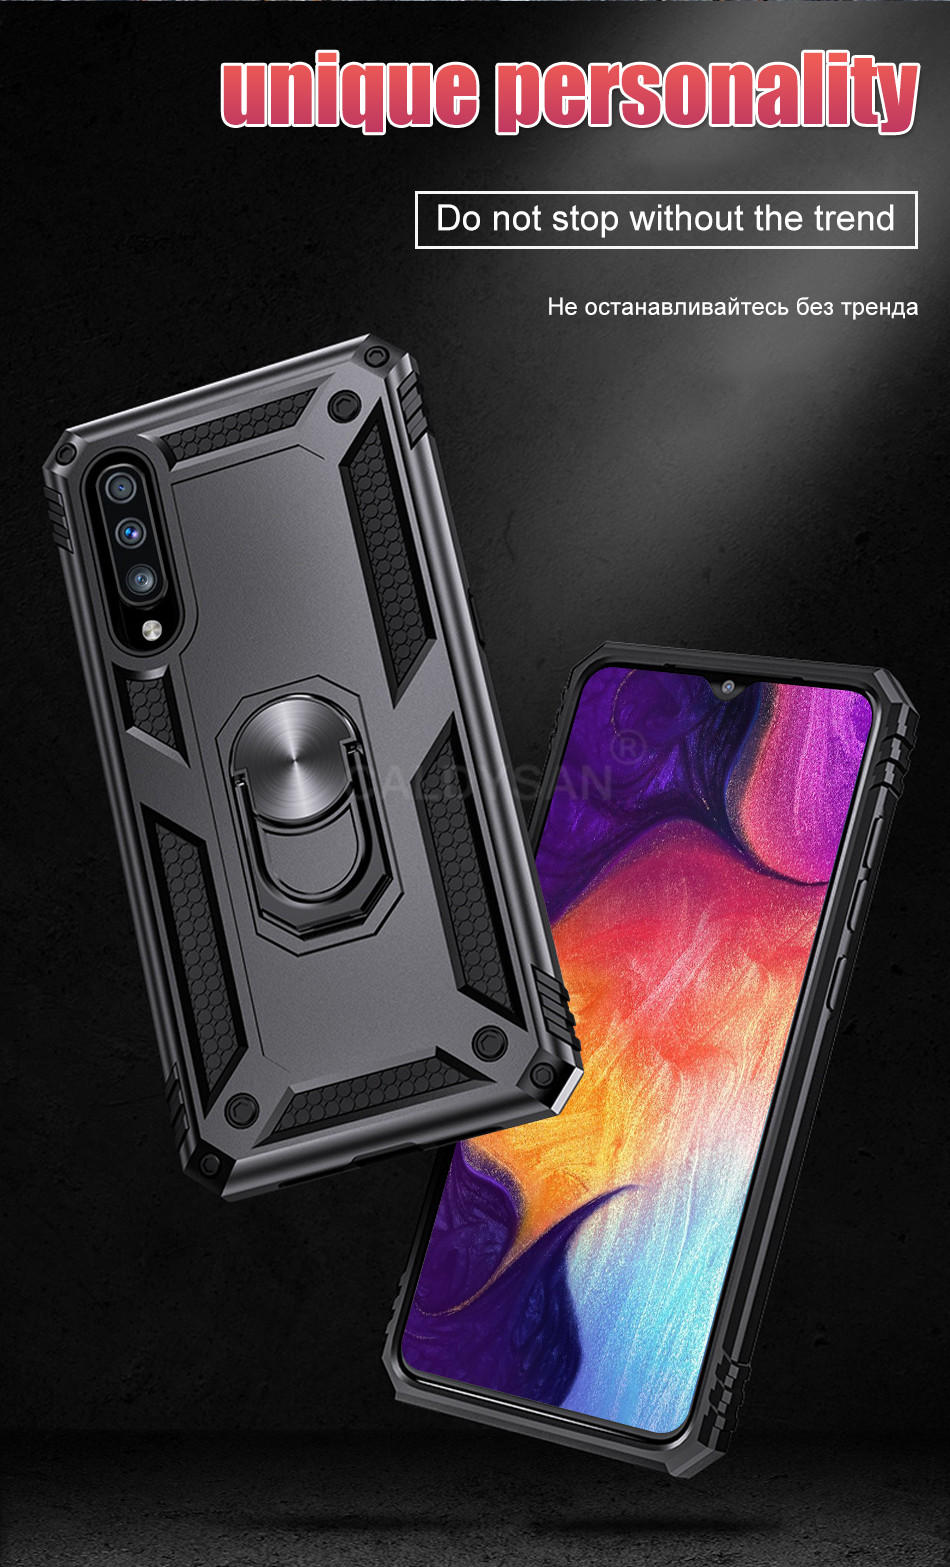 HTB1x0CYcBWD3KVjSZFsq6AqkpXaq - Luxury Armor Shockproof Case For Samsung Galaxy A50 A30 A51 A71 S20 Ultra S9 S10 S8 Note 8 9 10 Plus Car Holder Ring Case Cover